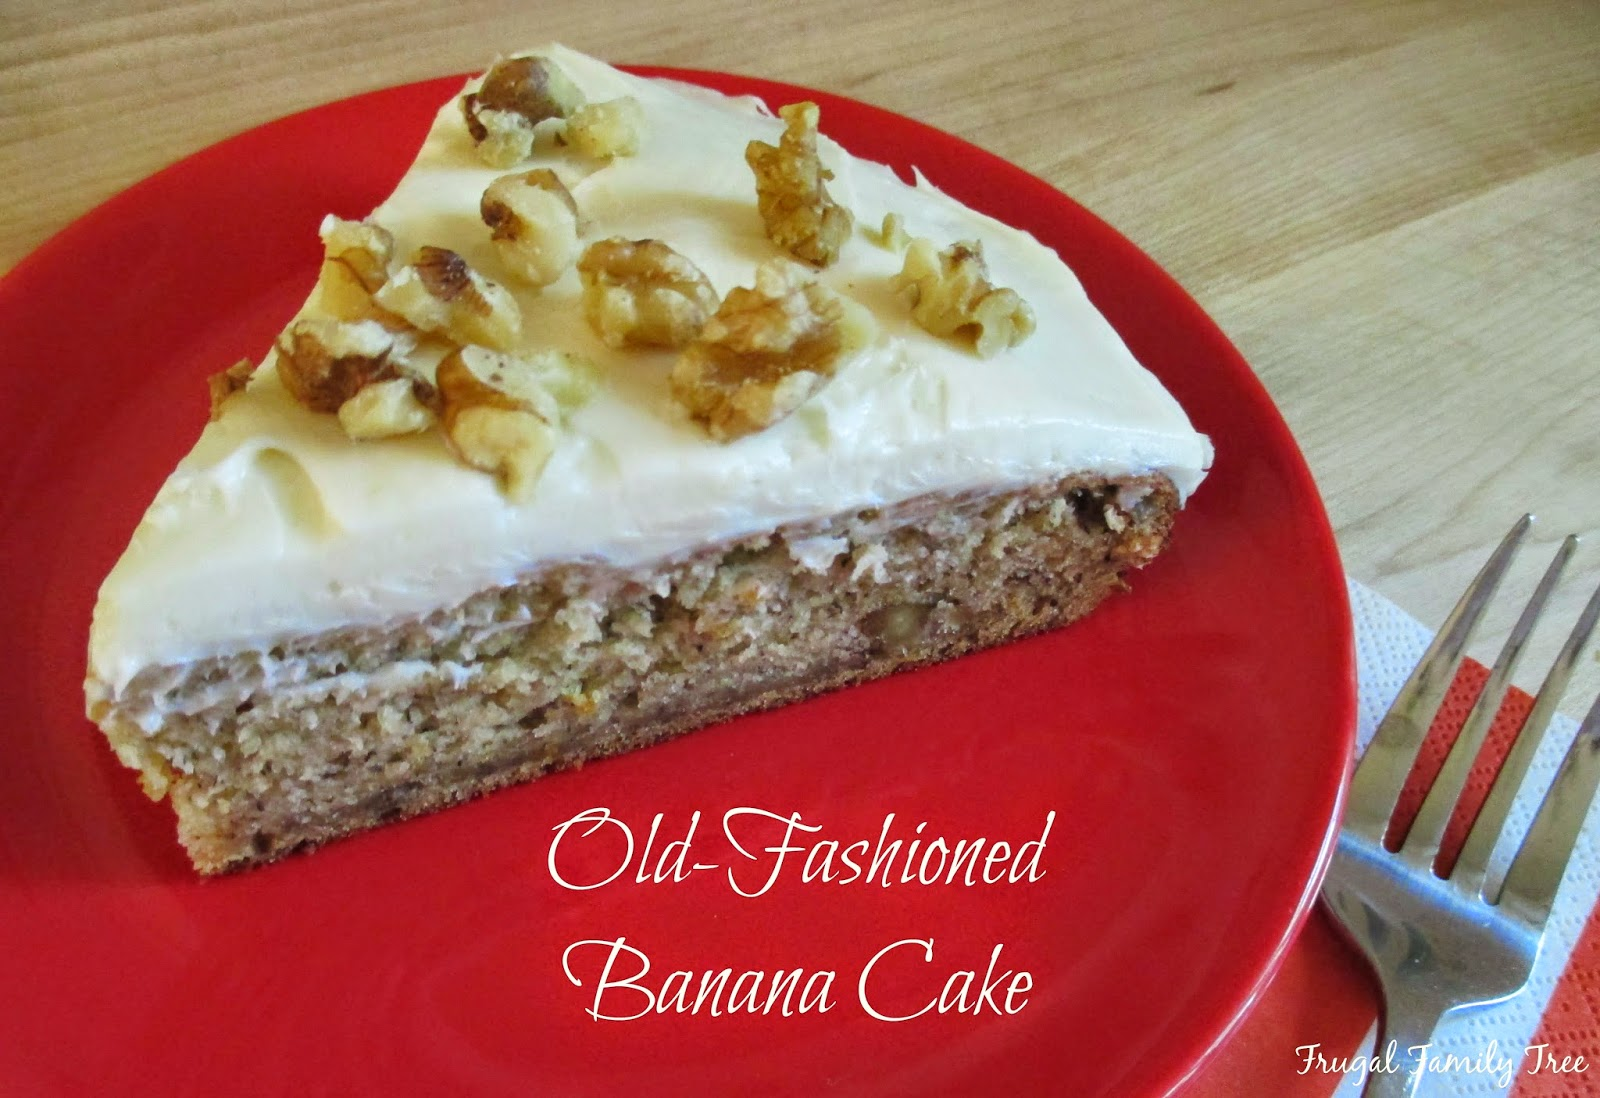 Old Fashioned Banana Cake Recipe From The Barefoot Contessa Frugal